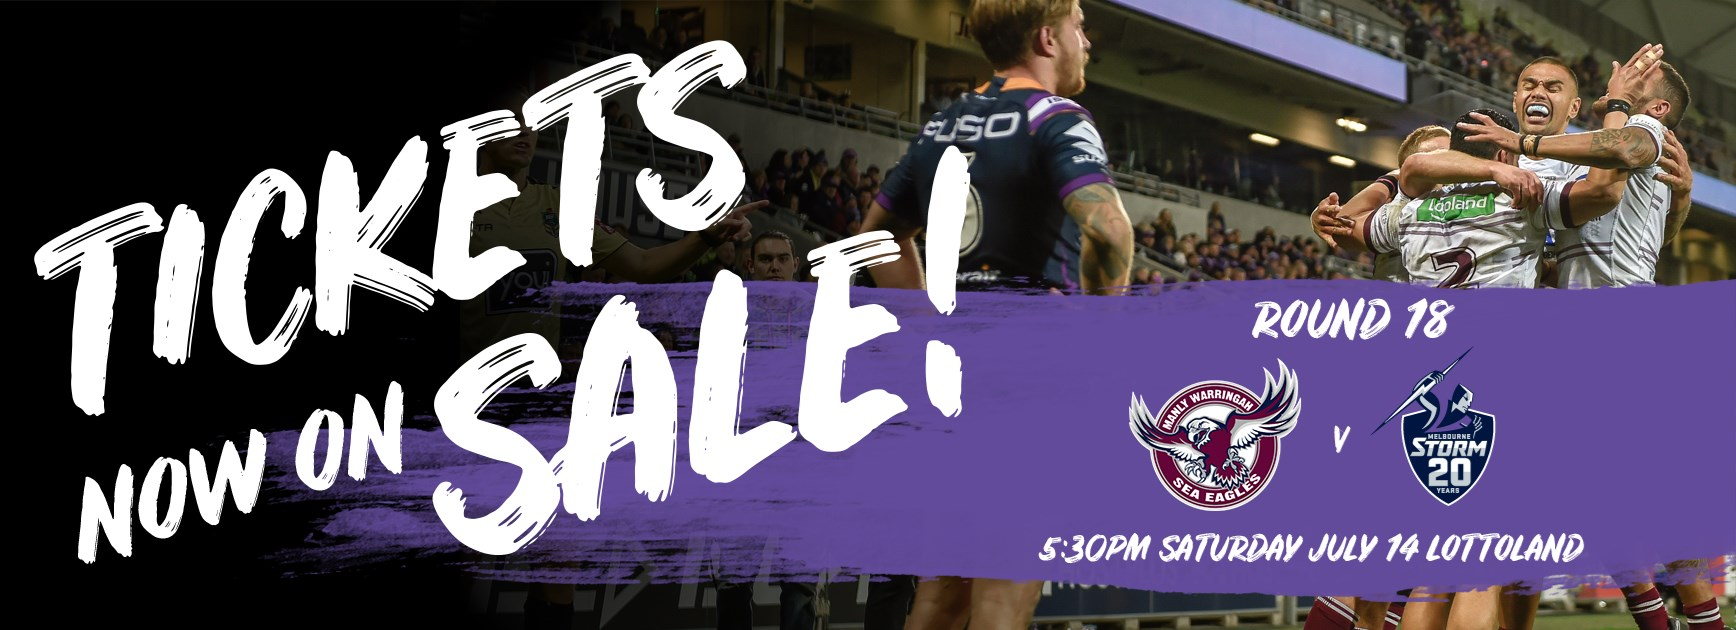 Tickets on sale for Storm clash